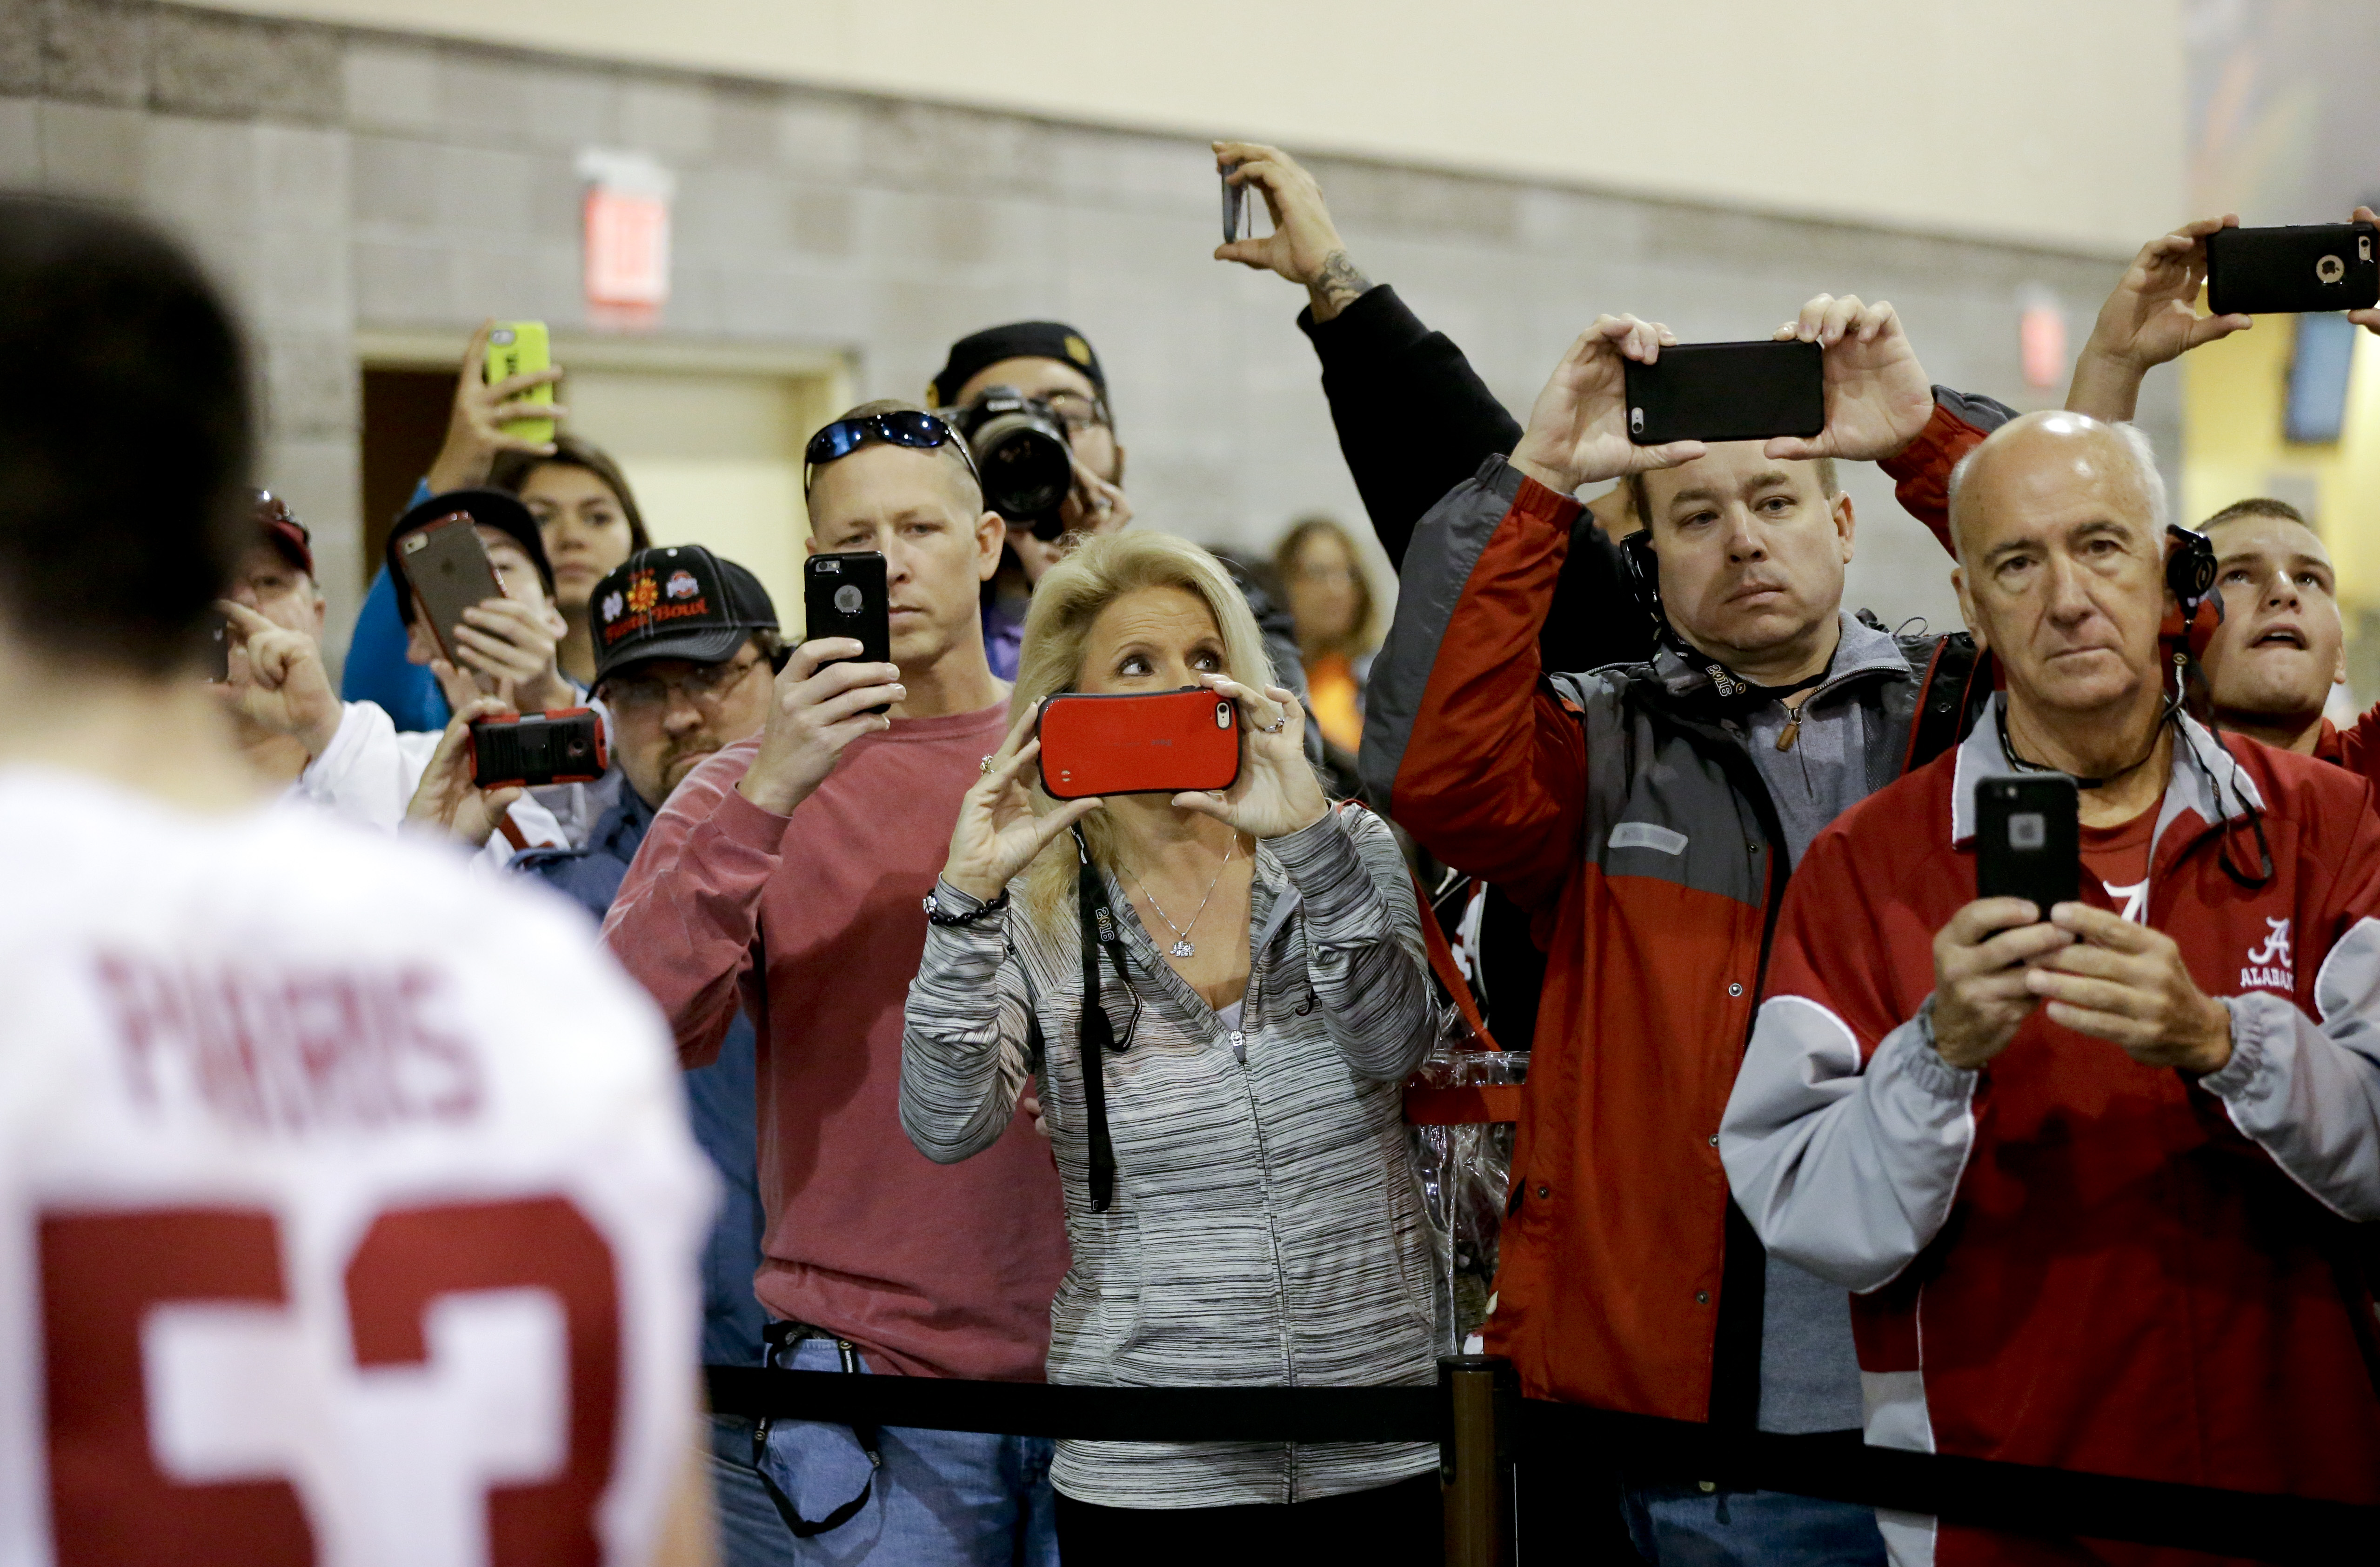 Fans take pictures as the team from Alabama leaves after media day for the NCAA College Football Playoff National Championship in Phoenix, Saturday, Jan. 9, 2016. Alabama will face Clemson in Monday's game. (AP Photo/David J. Phillip)